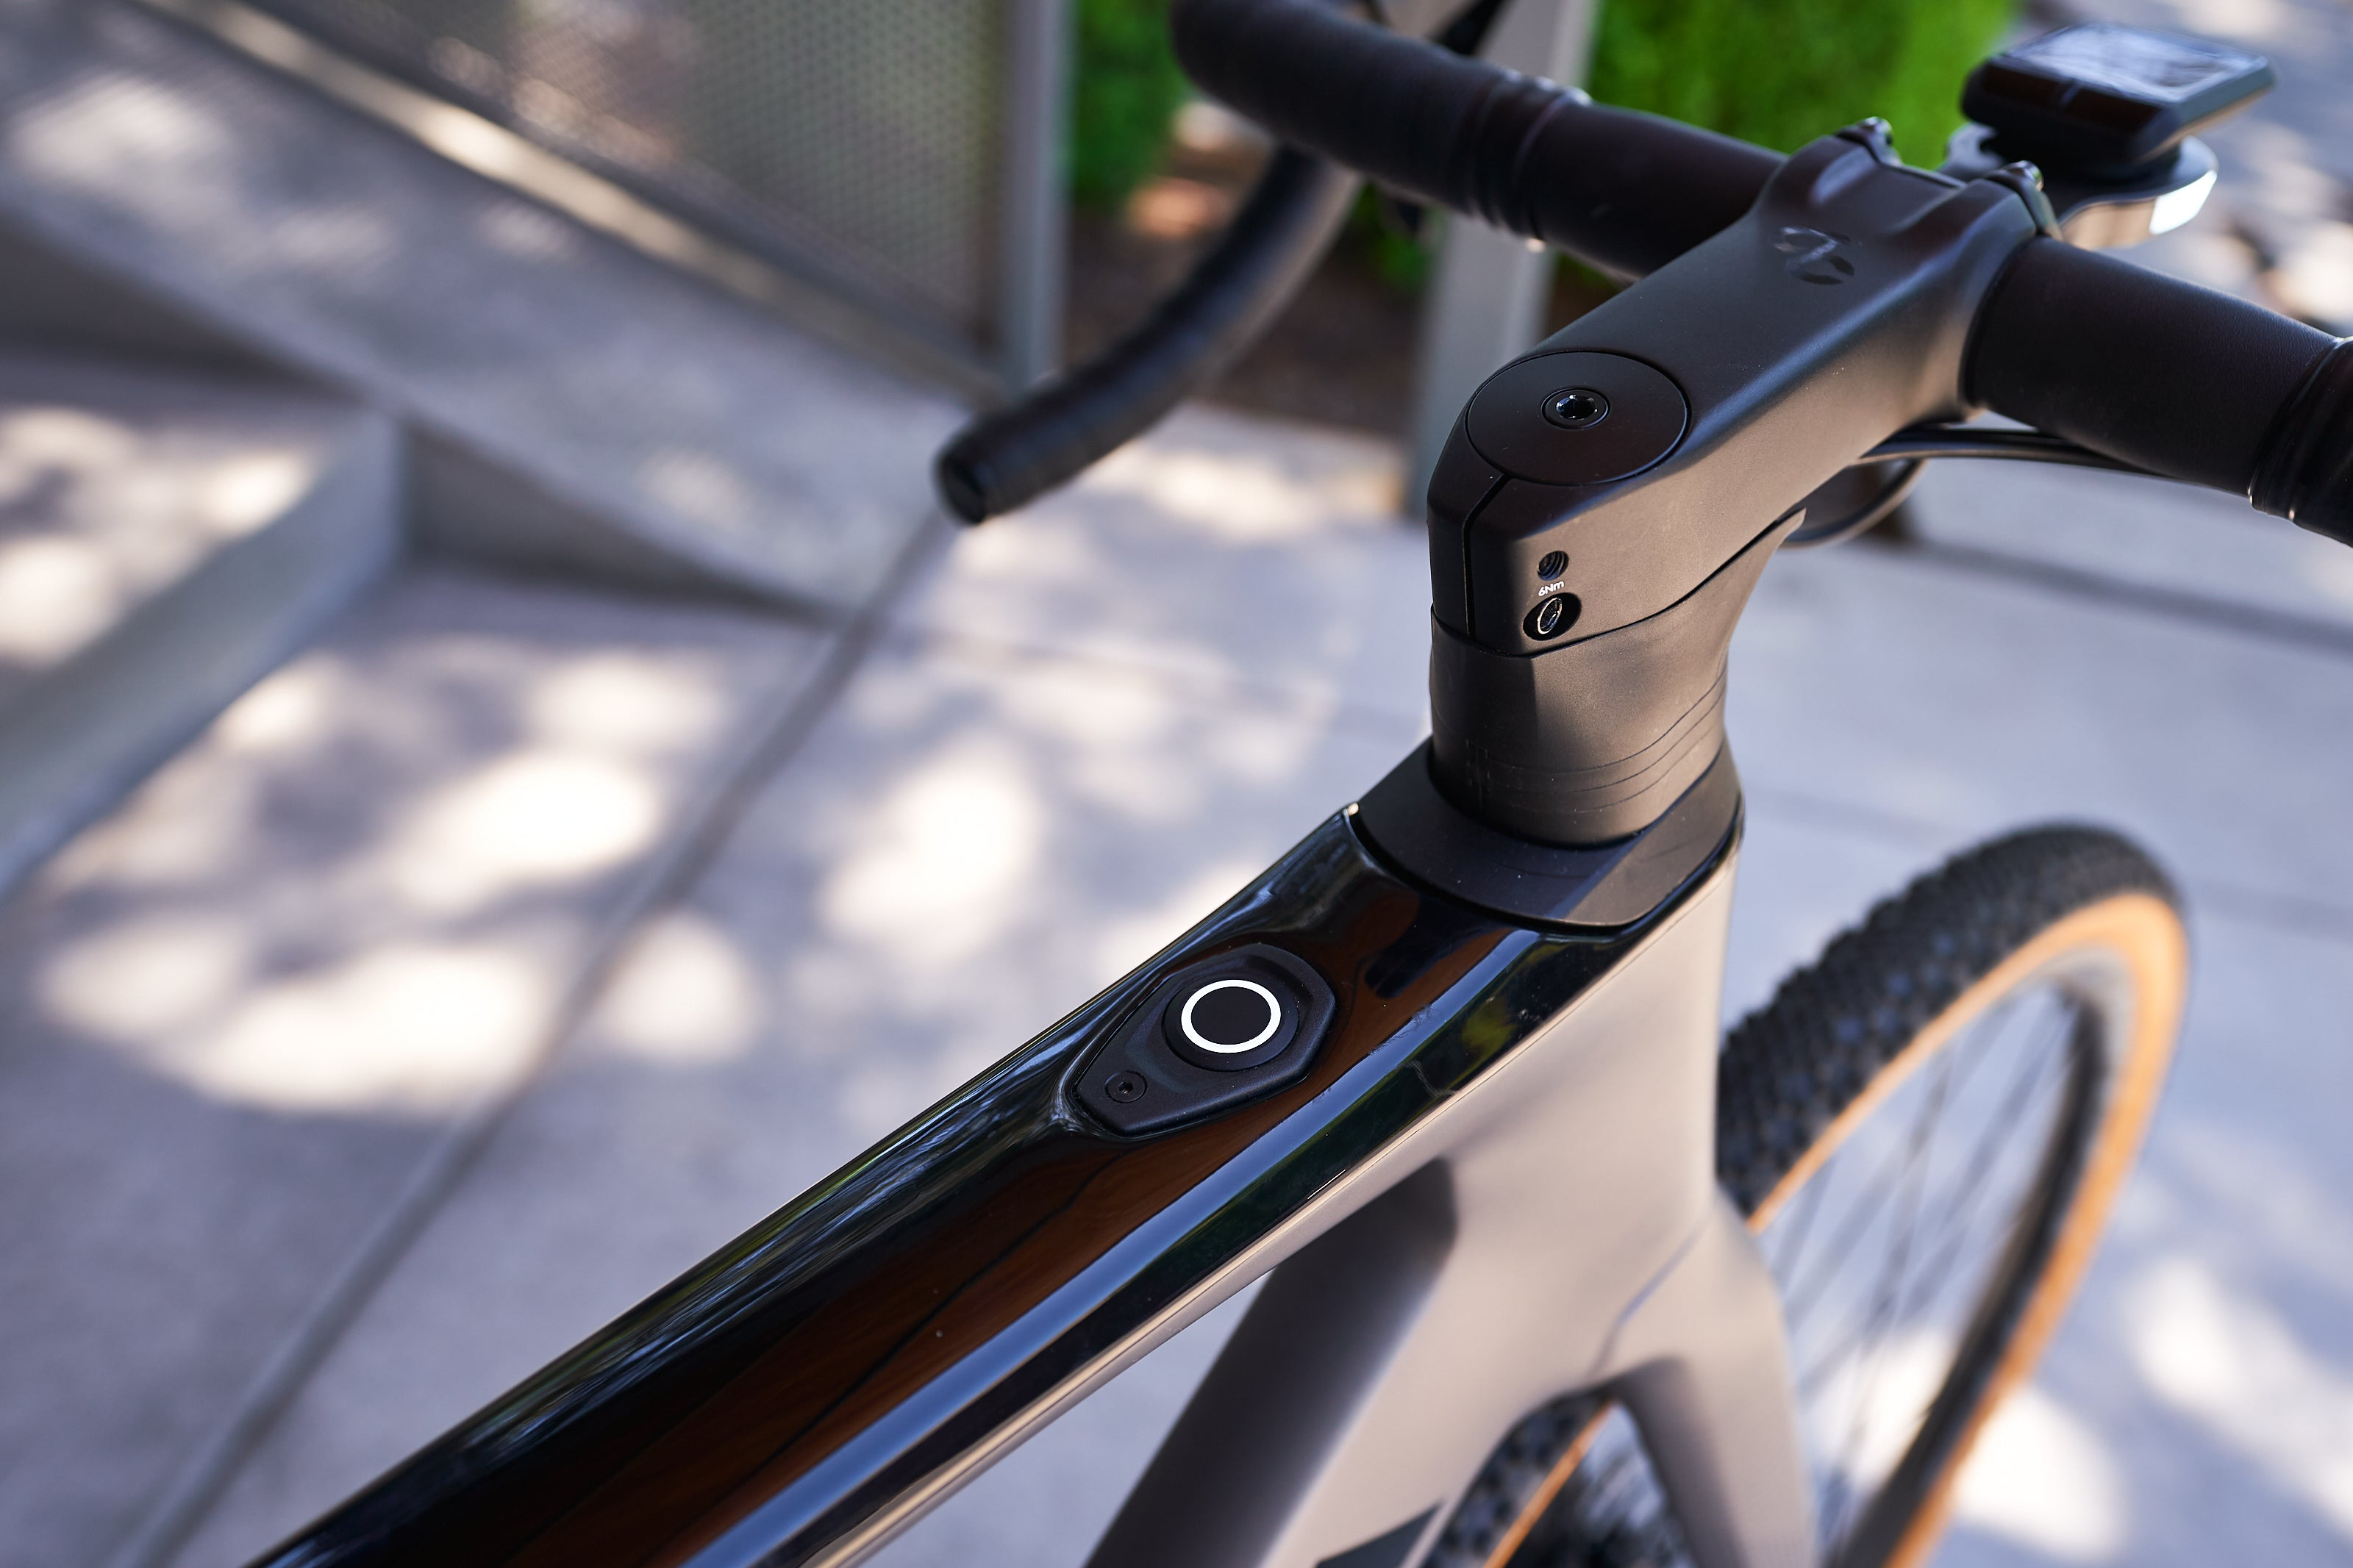 Orbea Gain M20 1x review - iWoc ONE controller